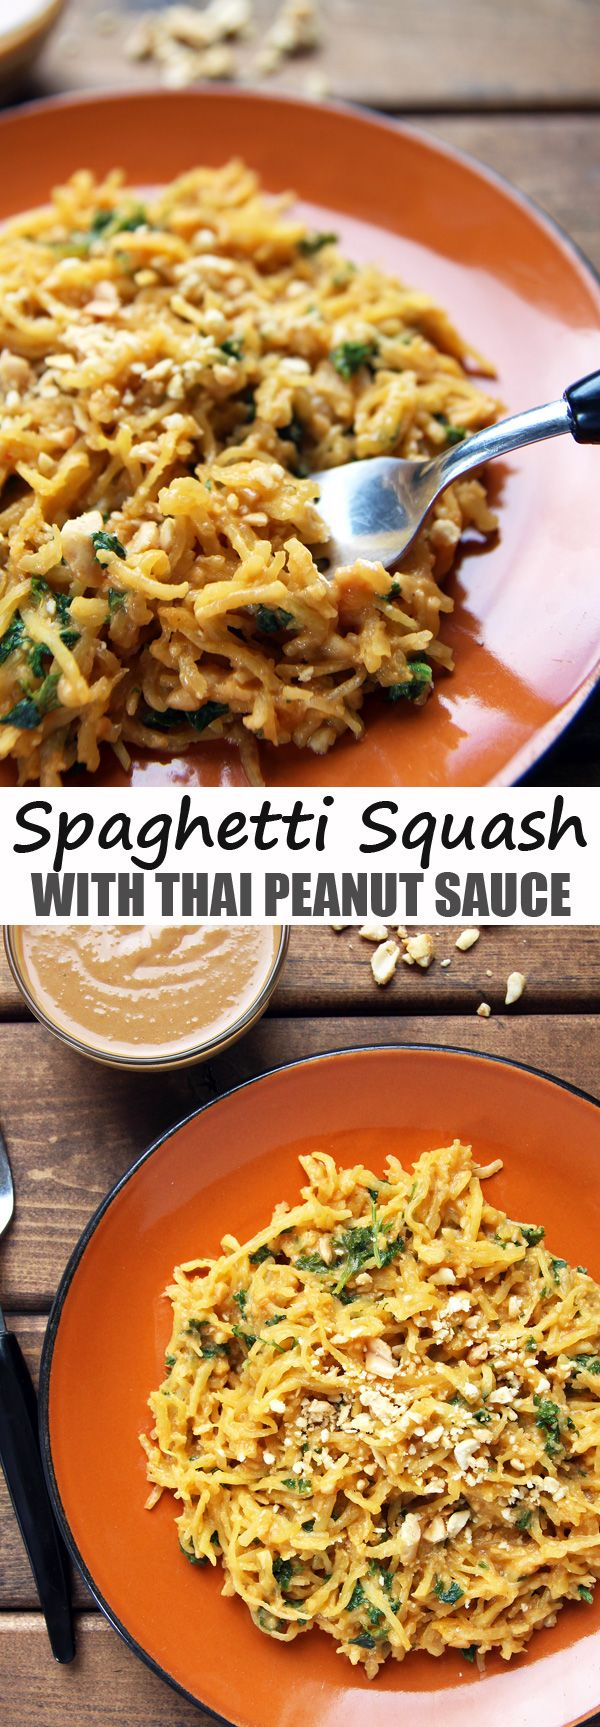 Spaghetti Squash with Thai Peanut Sauce. Tried the concept- great!